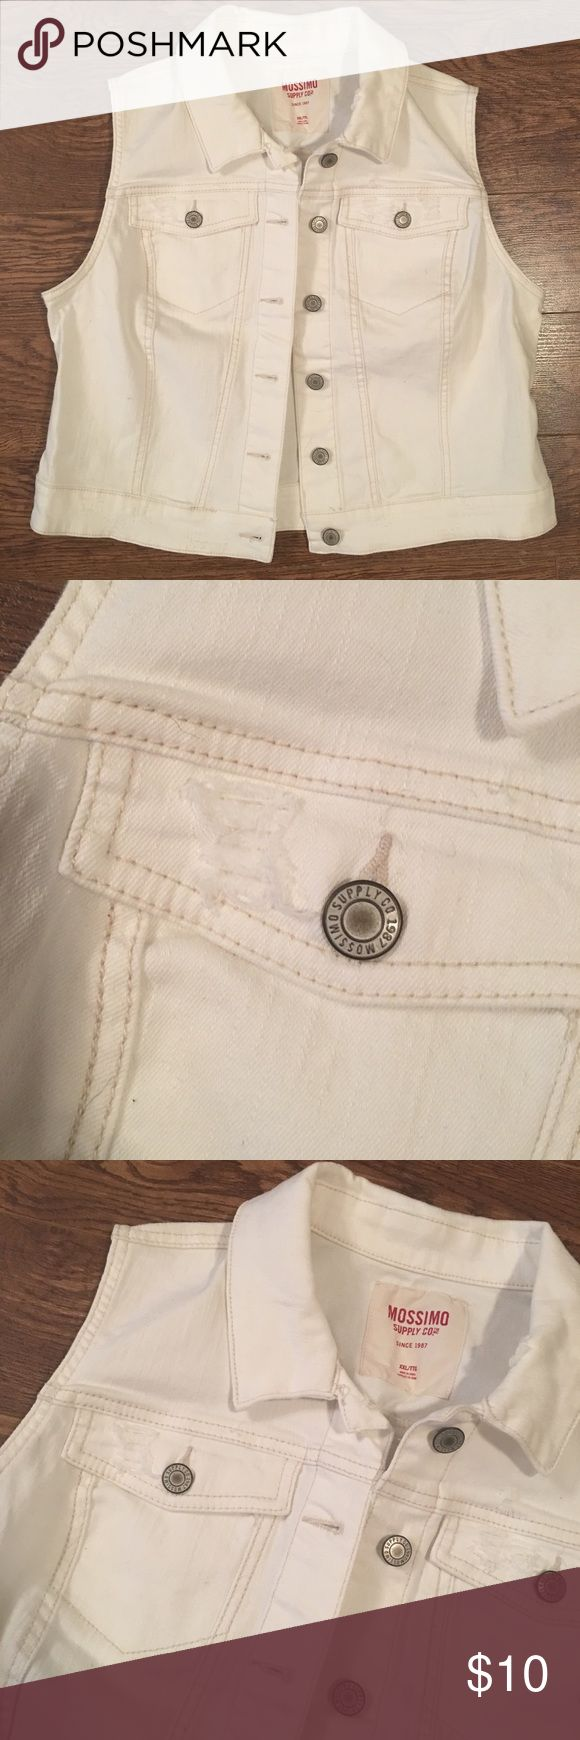 White Jean Vest White jean jacket vest. Has a couple of distressed places on the front as pictured! No stains or discoloring. Great condition! Mossimo Supply Co Jackets & Coats Vests